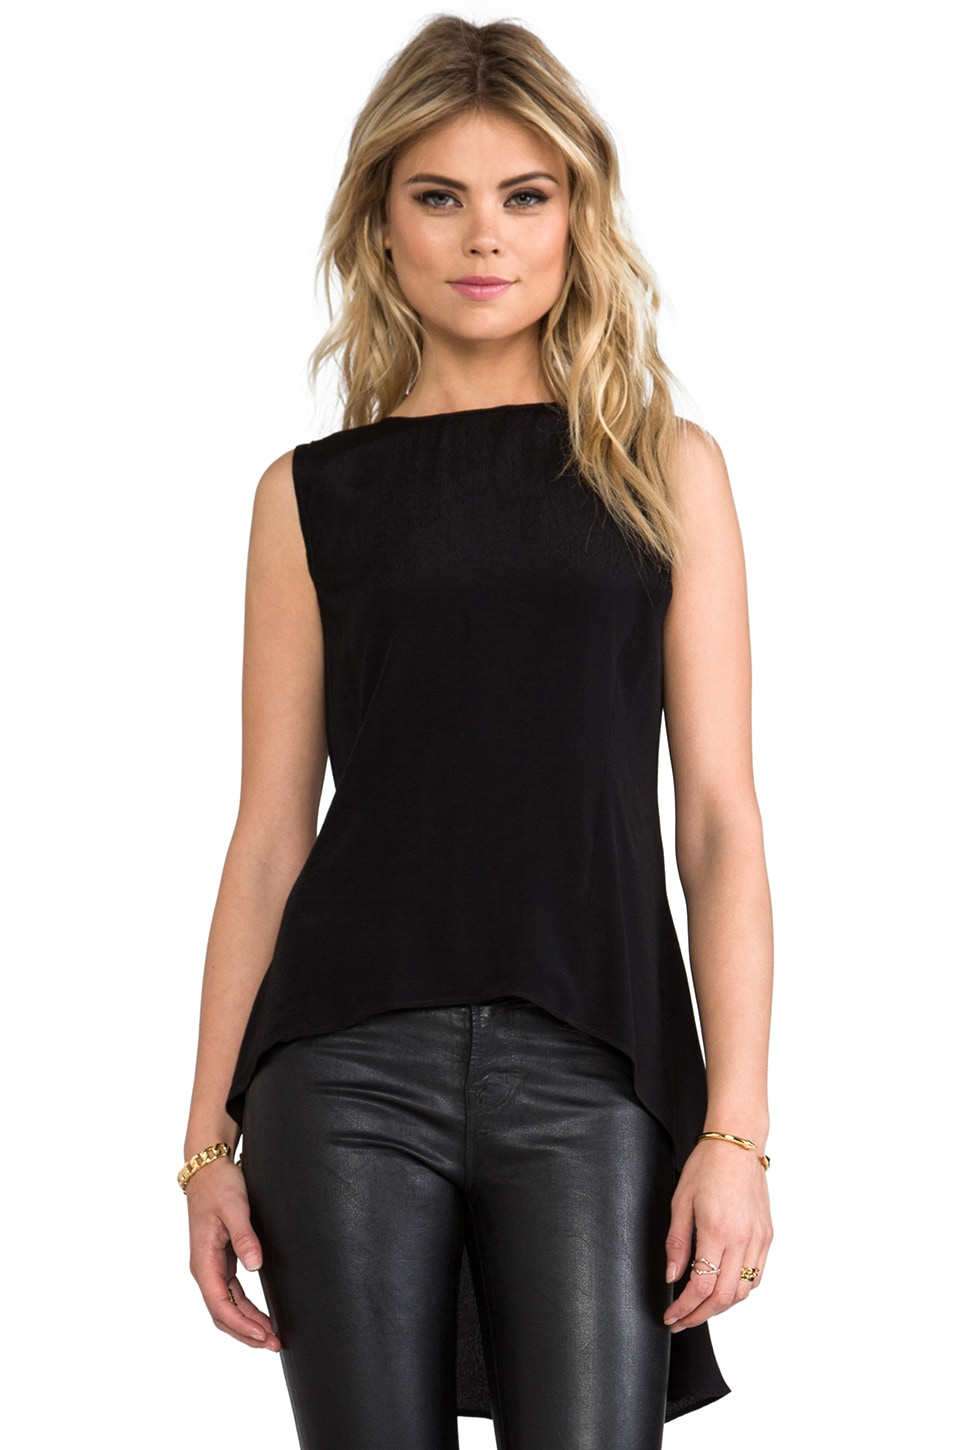 Backstage Express Yourself Top in Black